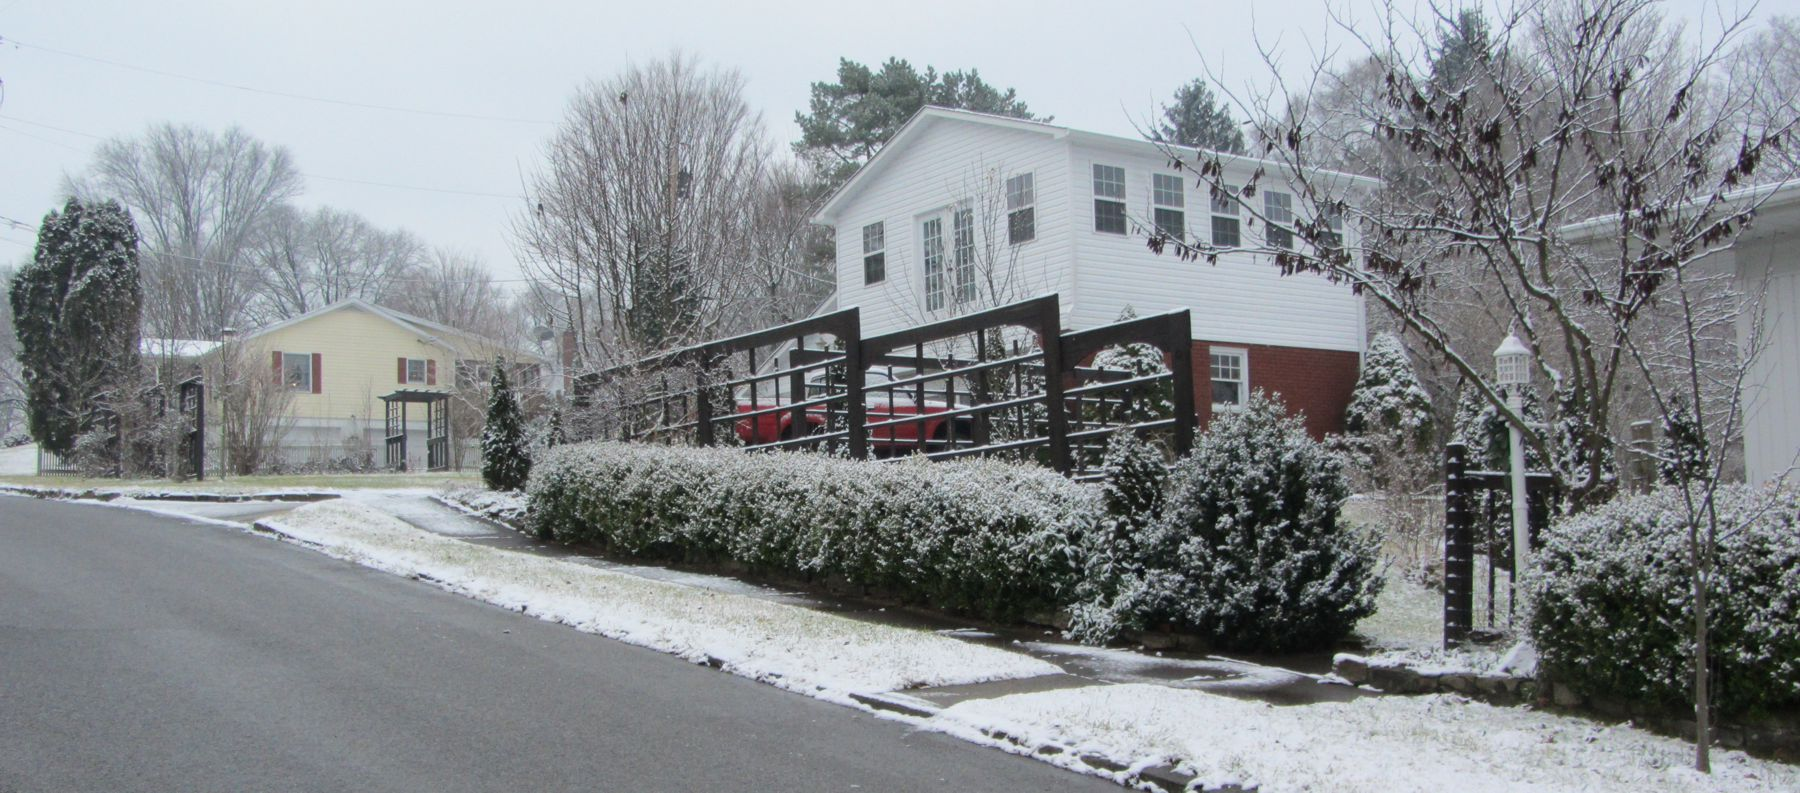 Man Cave - White Christmas 2012 - IMG_0236-small.jpg